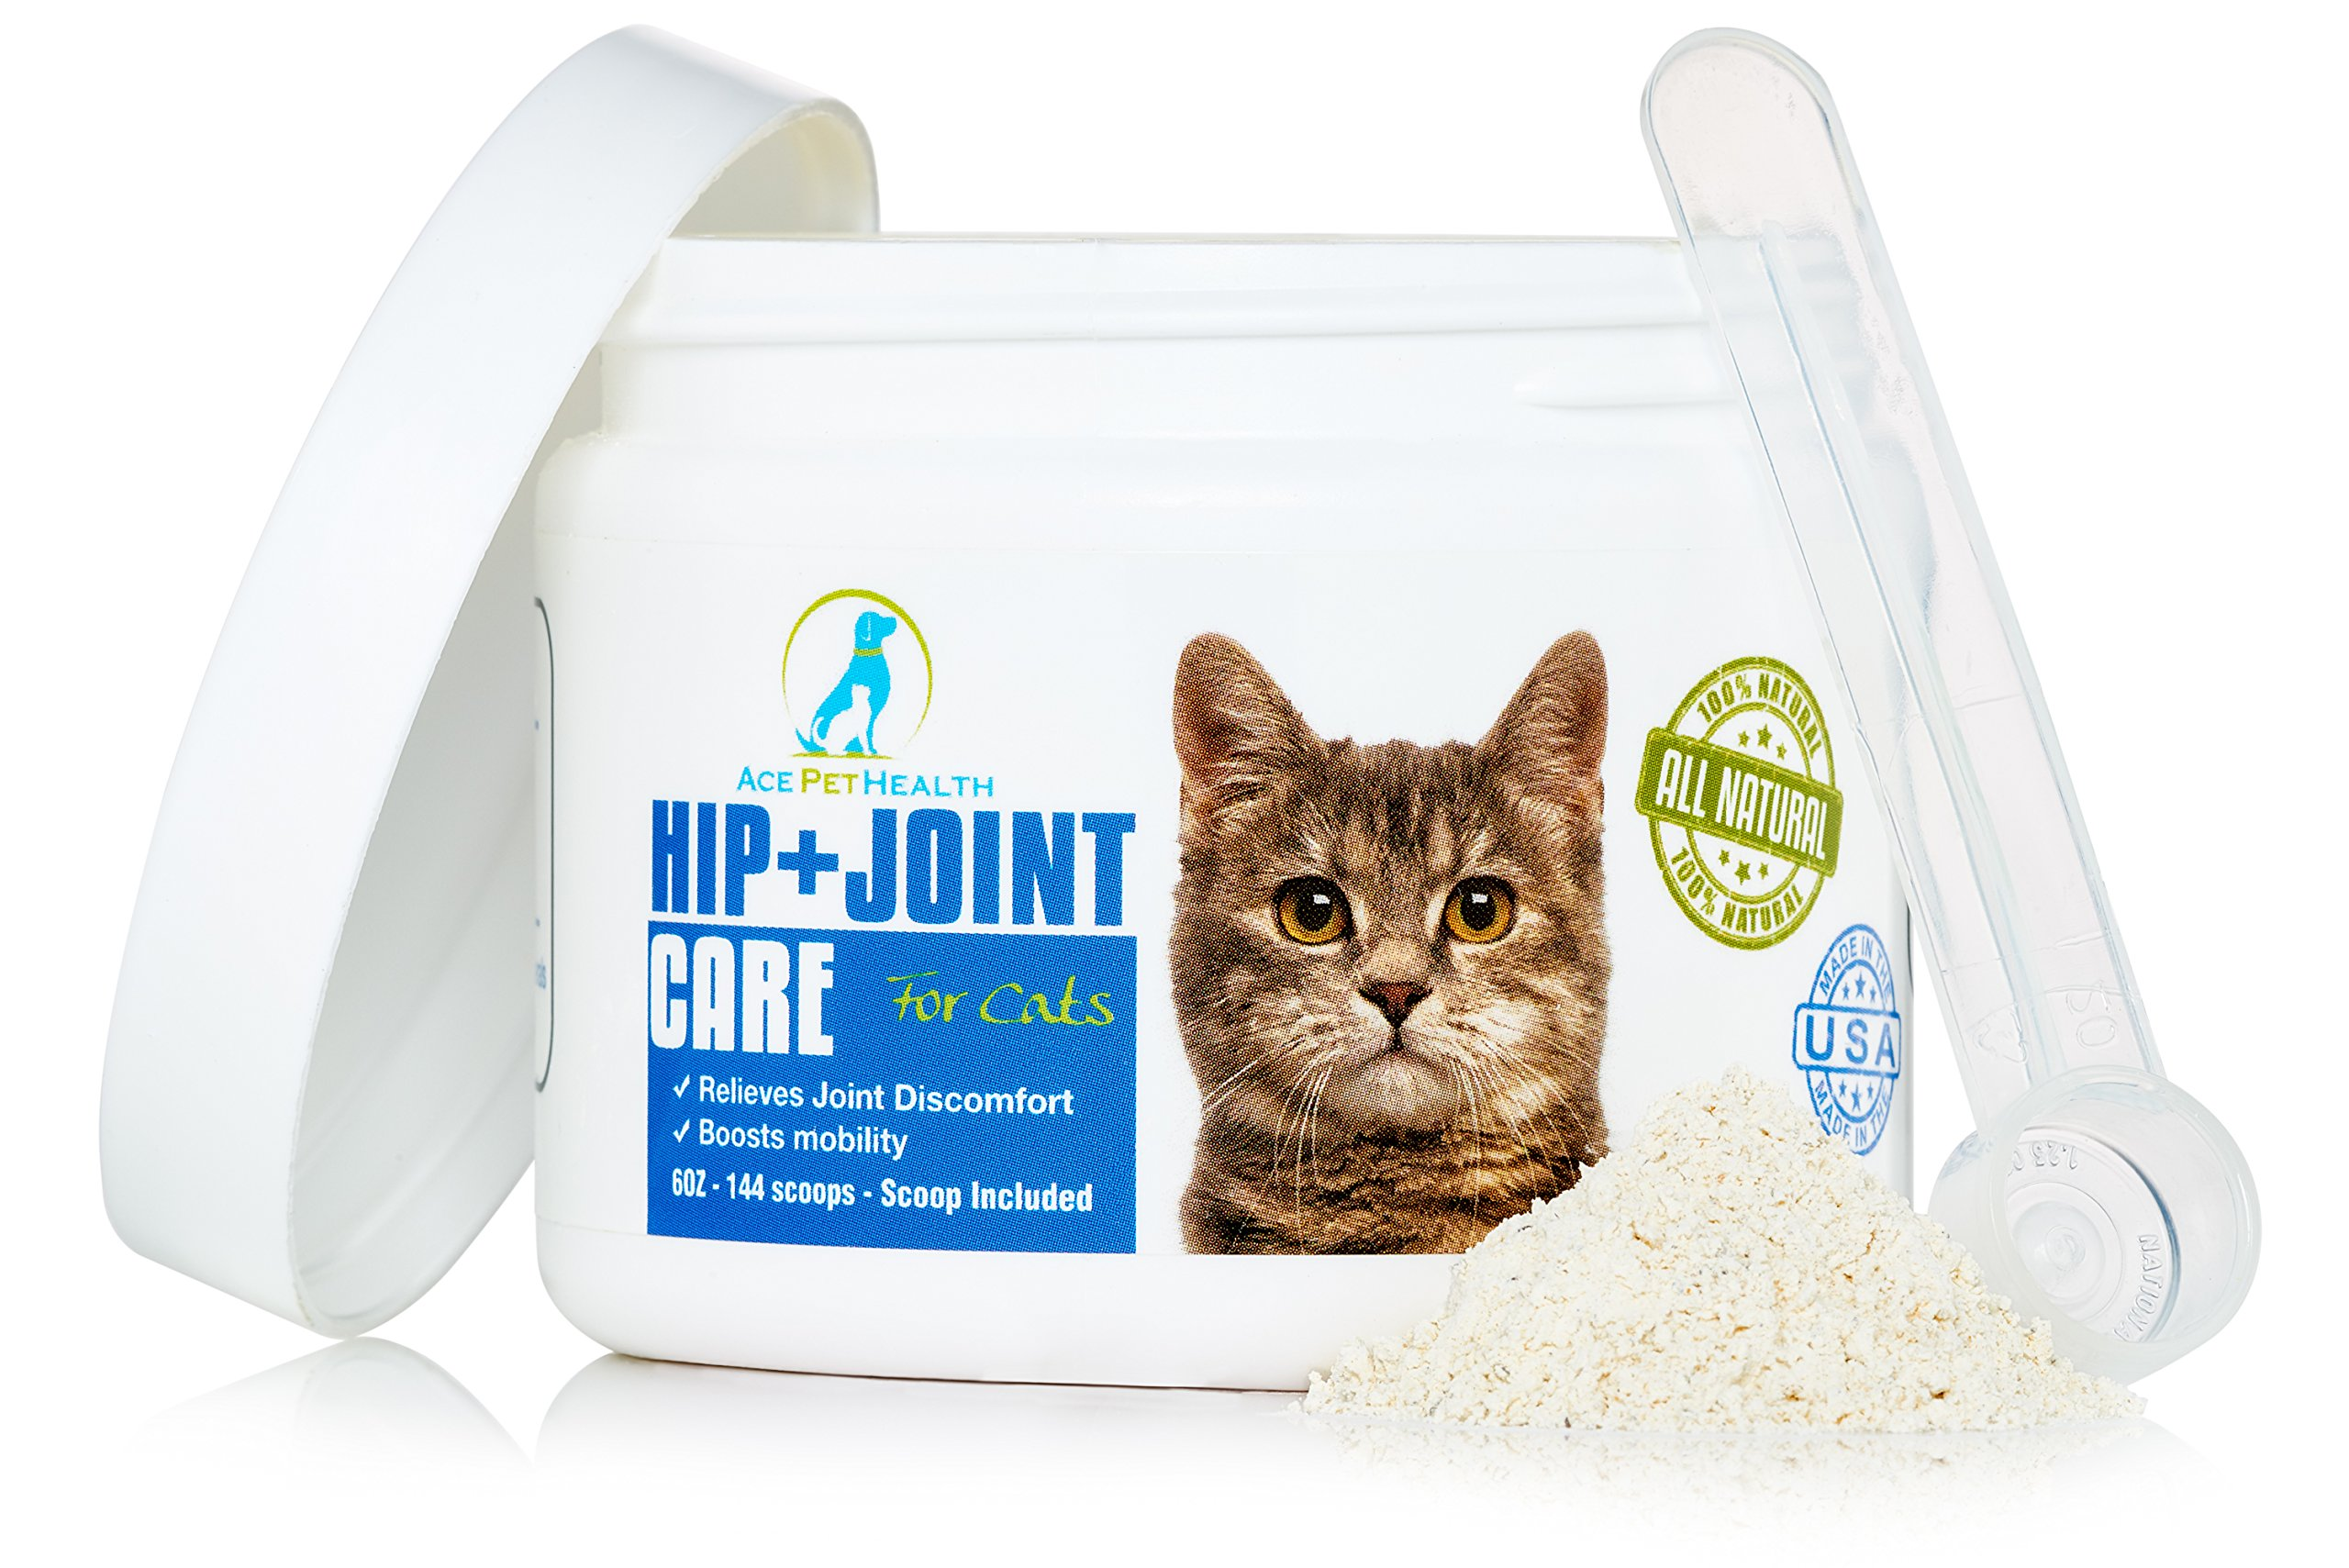 Ace Pet Health Joint Support Powder 6oz - Glucosamine Chondroitin for Cats with MSM - Arthritis Pain Relief for Cats with Kona Berry and Turmeric - Anti inflammatory for Cats